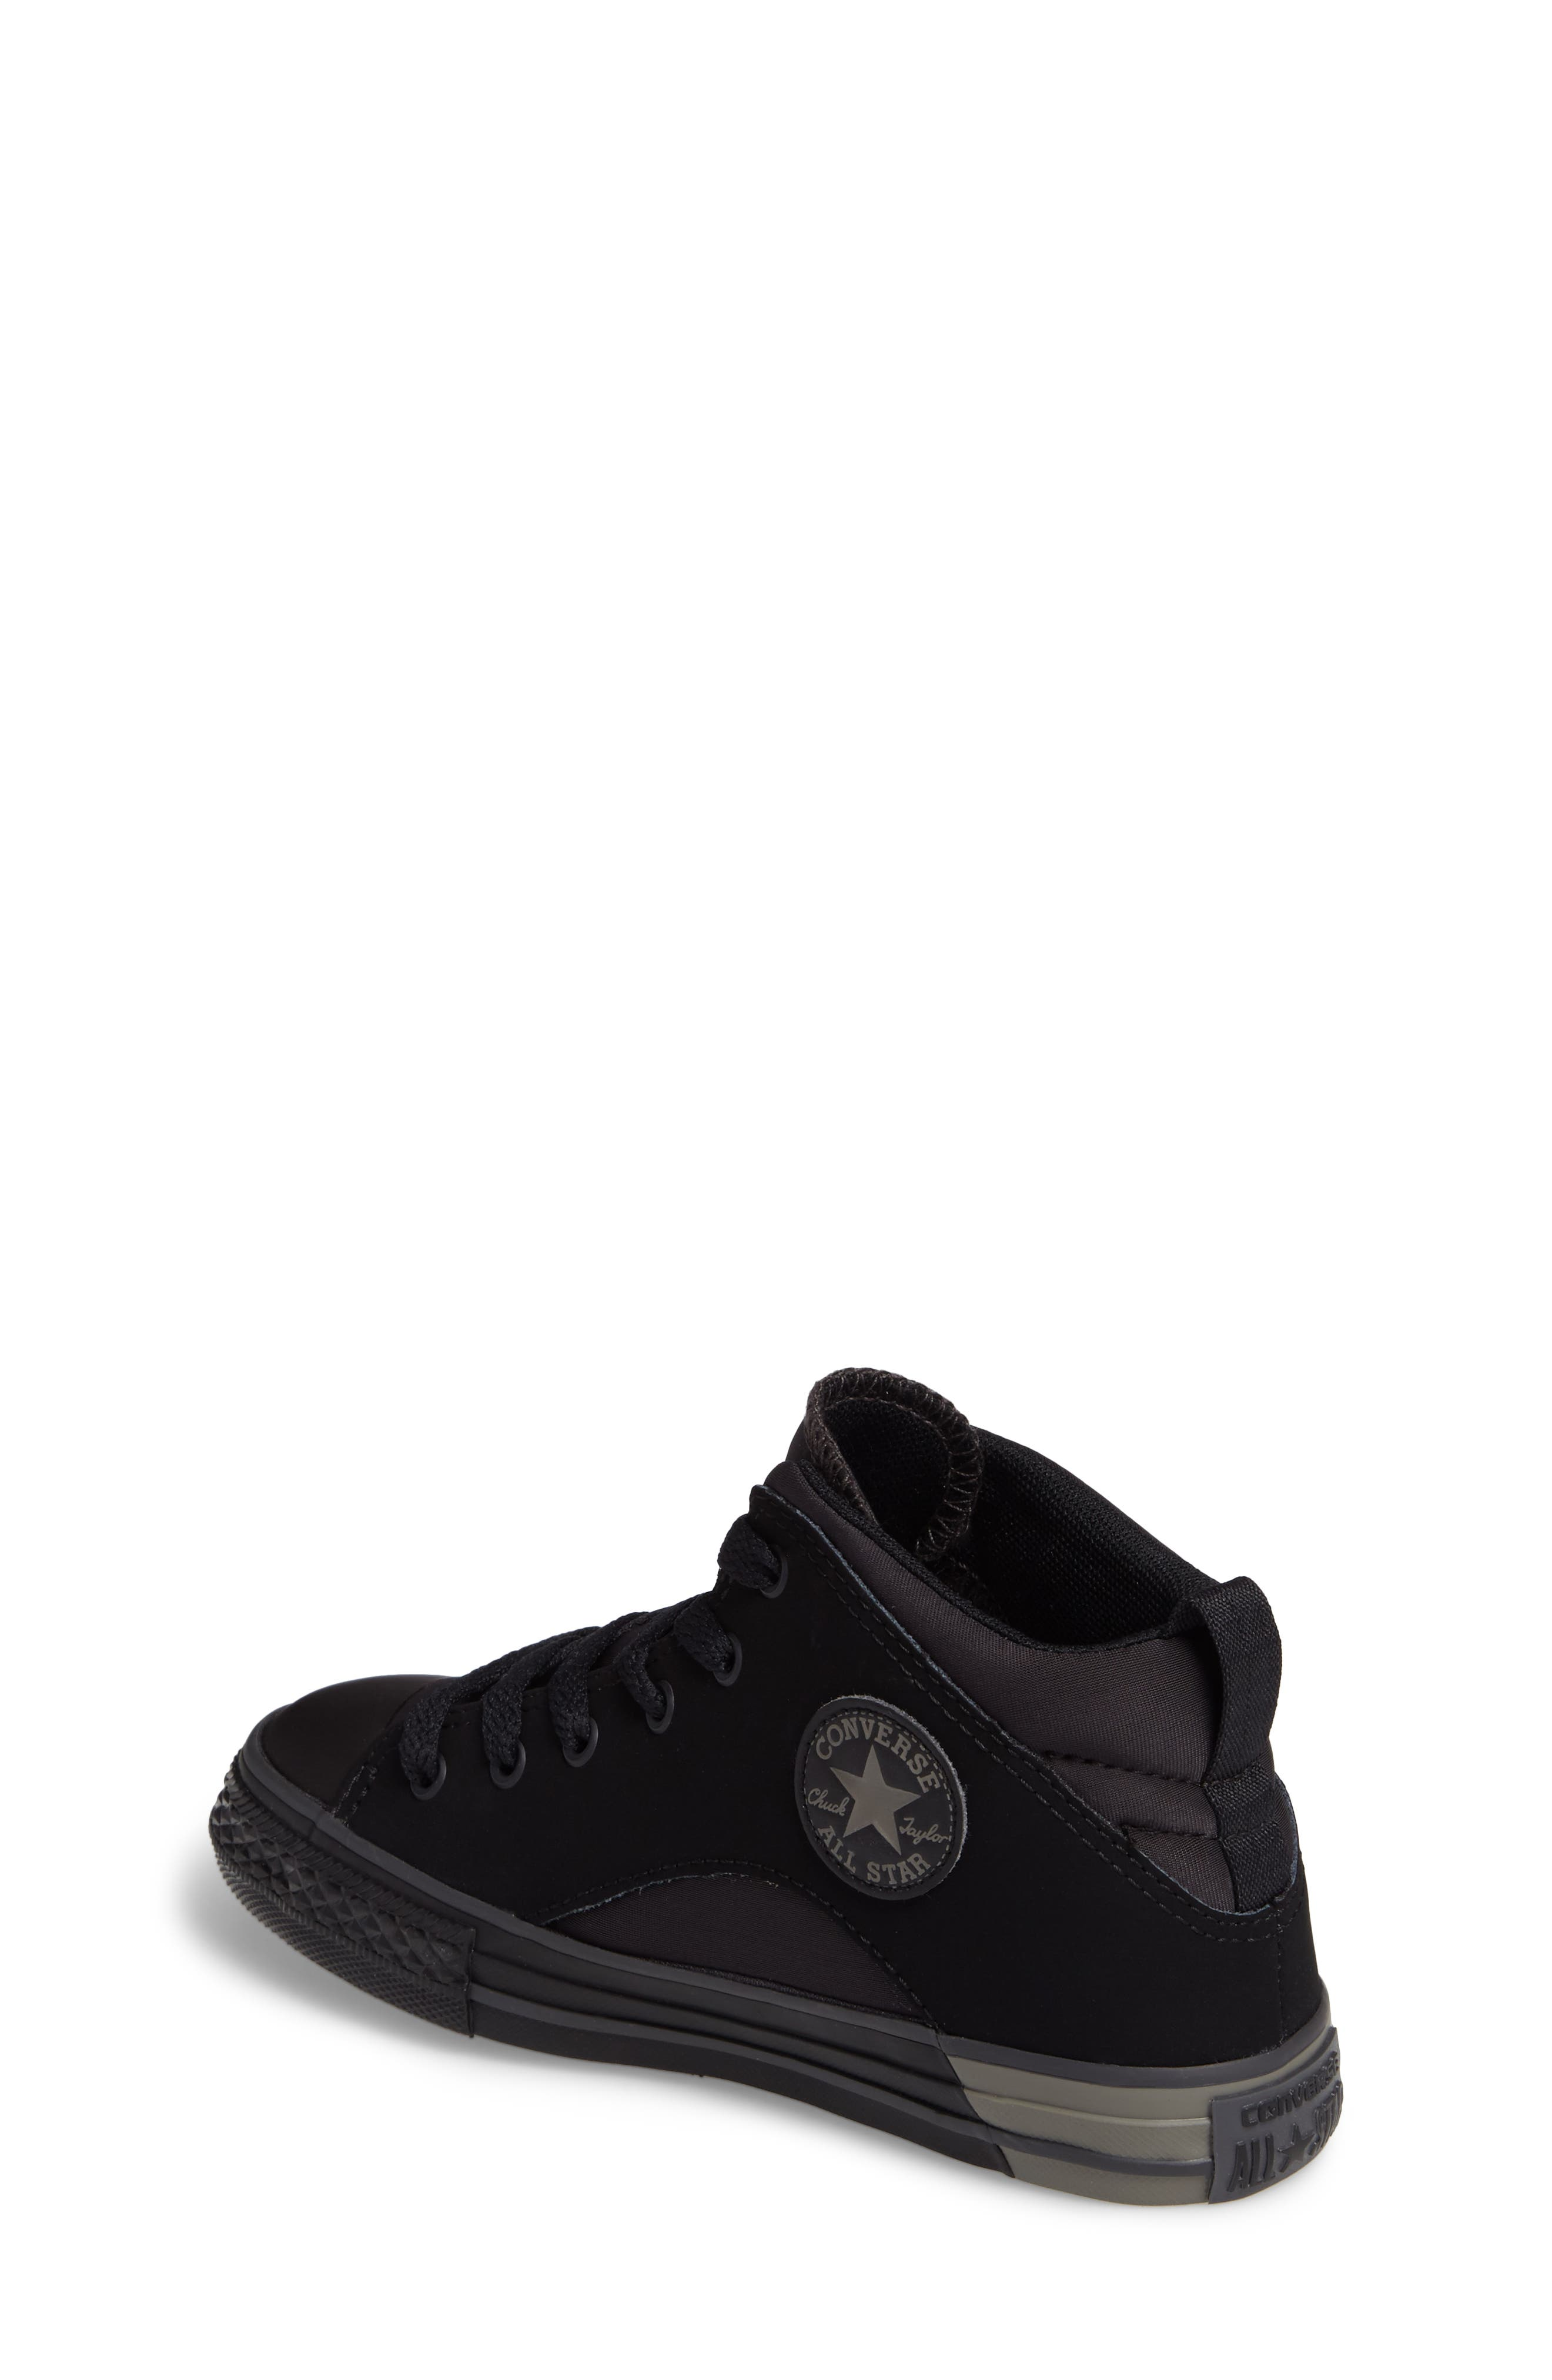 Chuck Taylor<sup>®</sup> All Star<sup>®</sup> Official High Top Sneaker,                             Alternate thumbnail 2, color,                             001